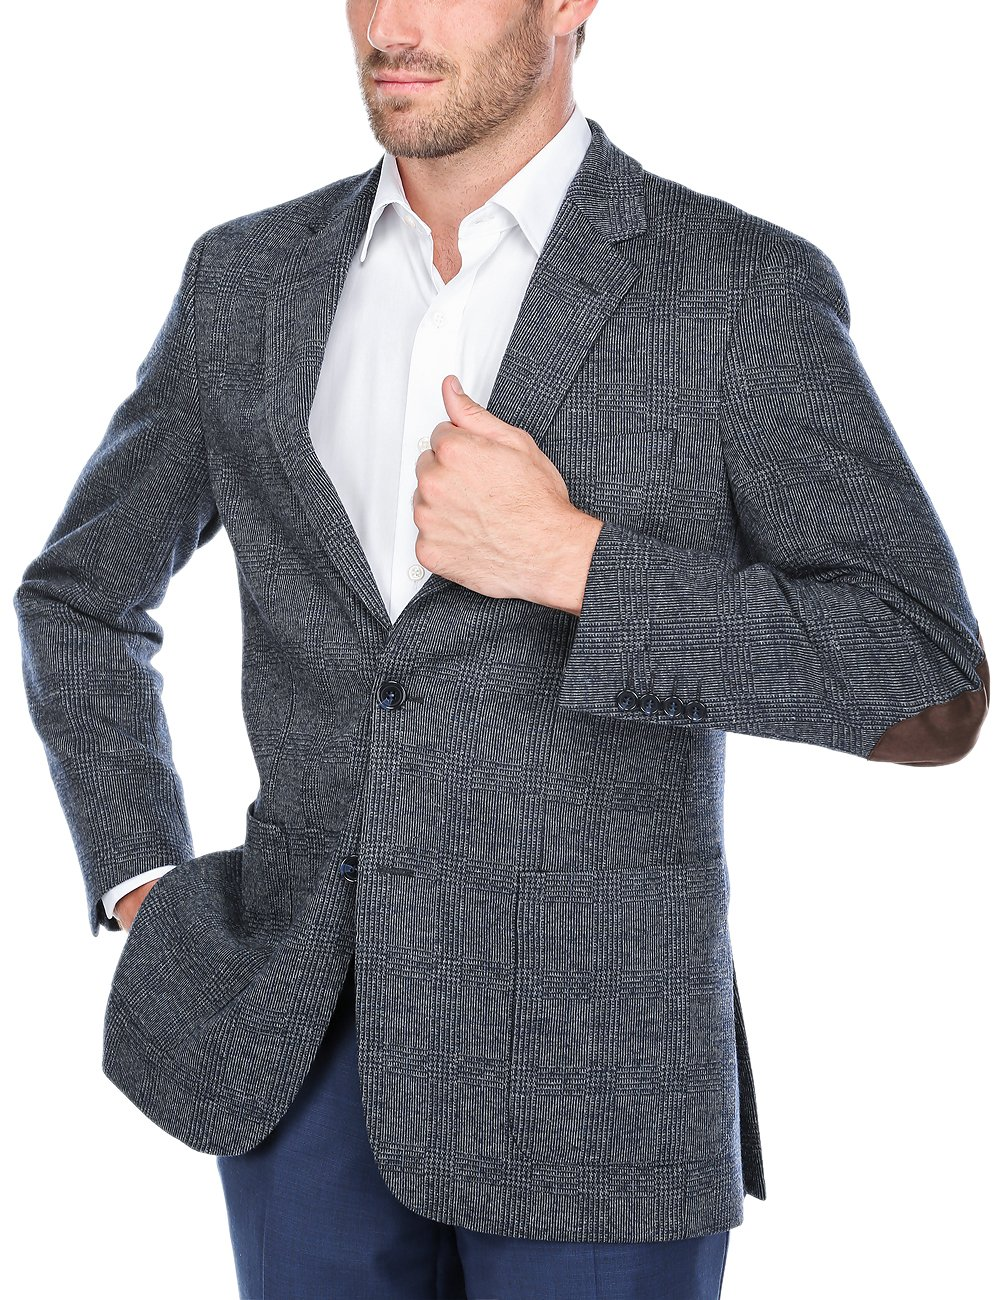 Chama Men's Two Button Single Breasted Classic Fit Sport Coat Wool Blazer (Navy&Grey, 40R)